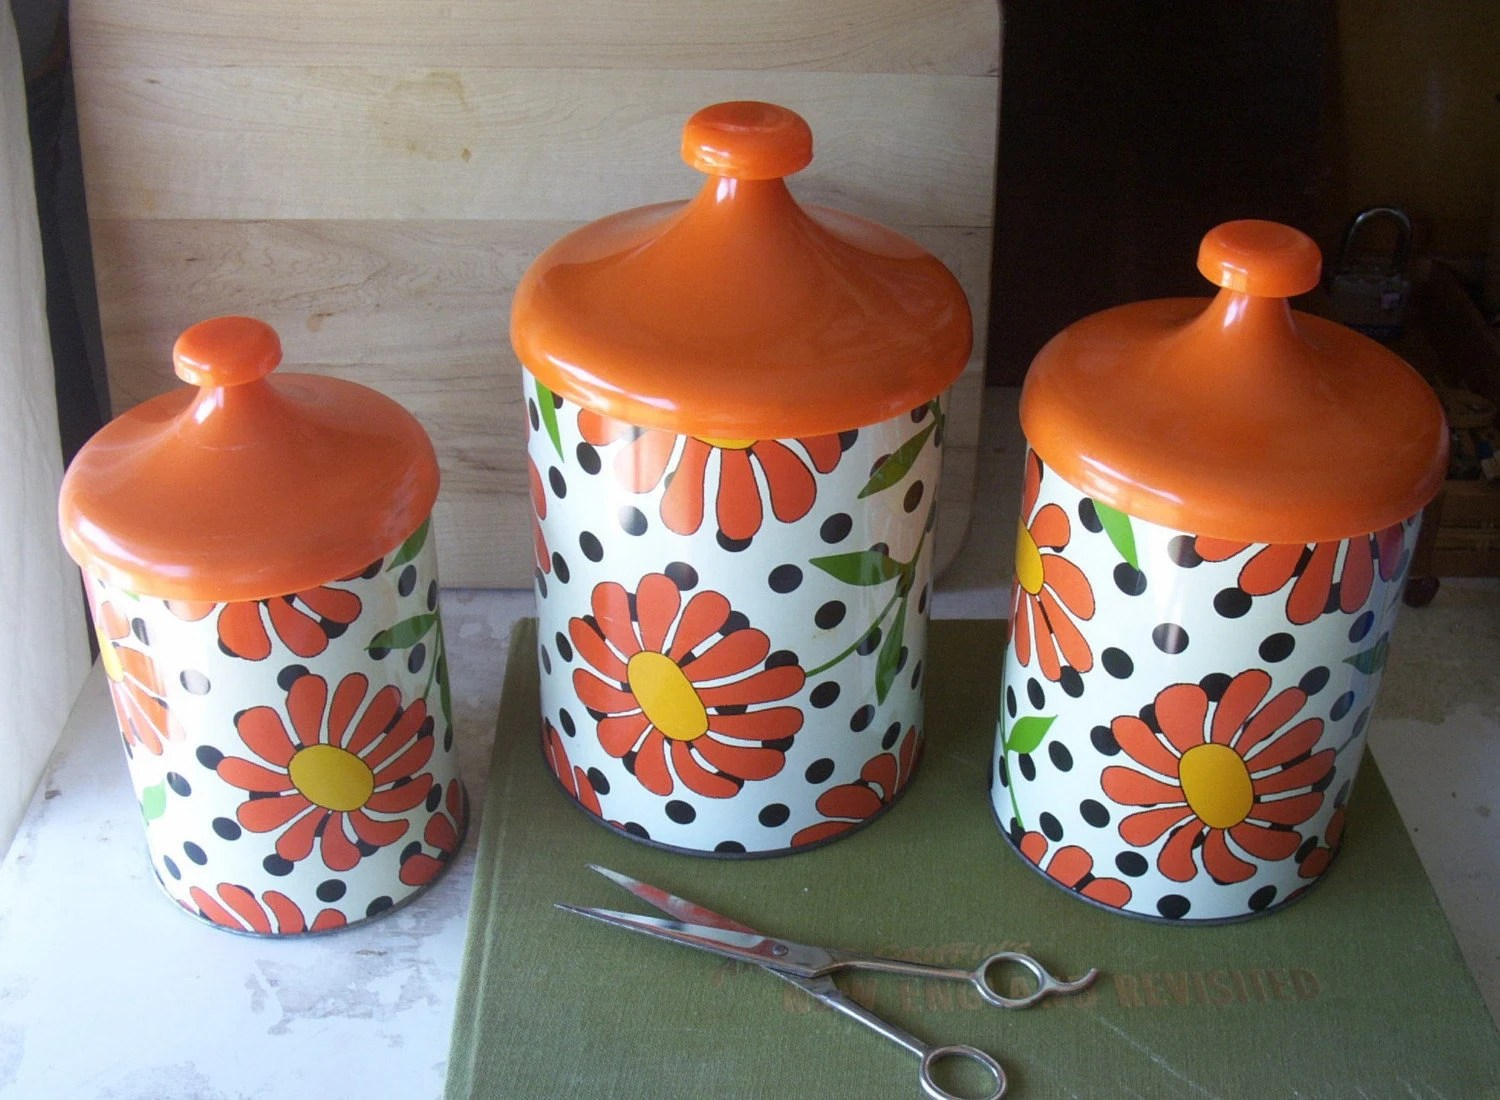 Vintage 1960 Kitchen Canister Set Polka Dots and Flowers Retro Home Decor